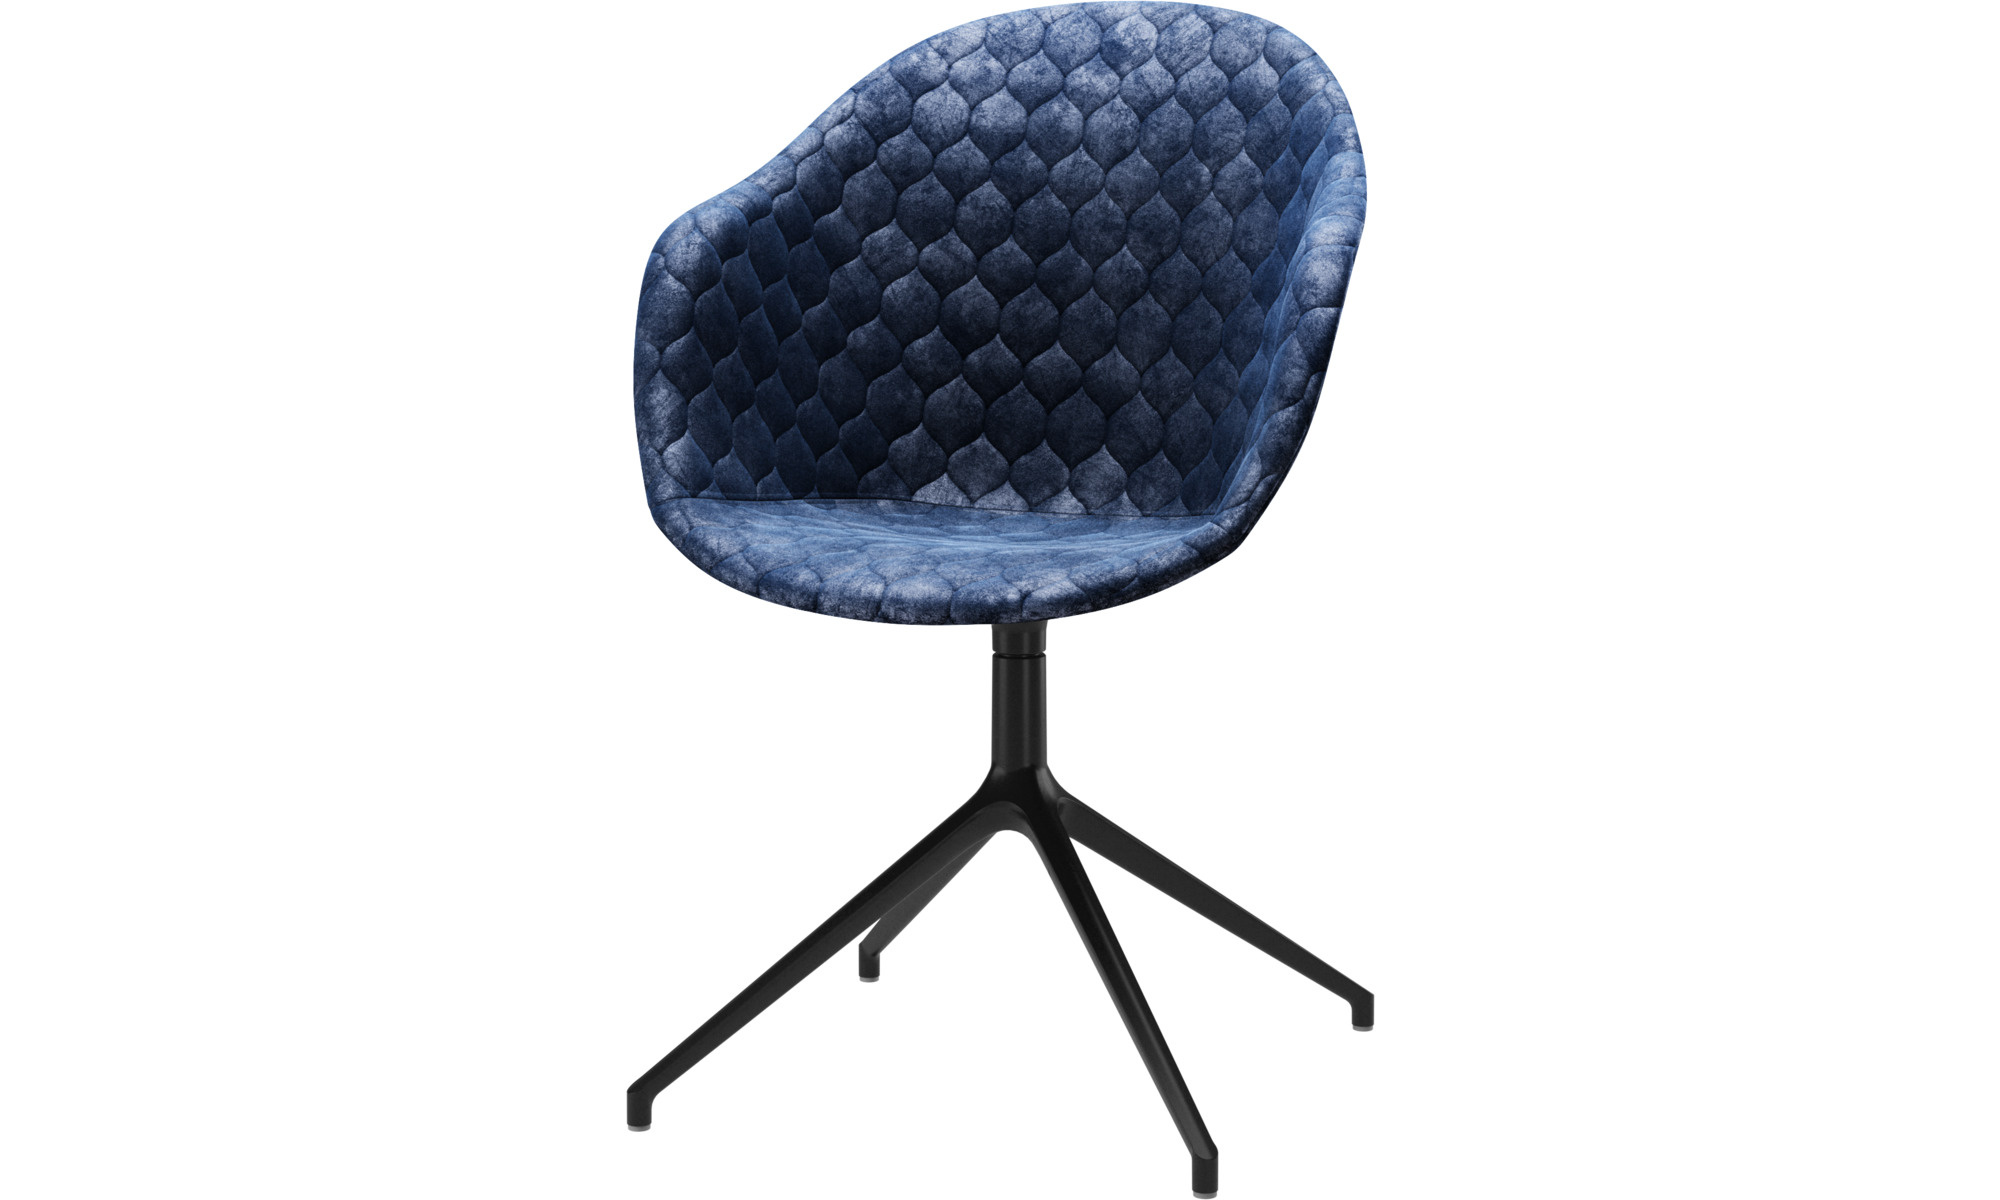 Home office chairs - Adelaide chair with swivel function - Blue - Fabric